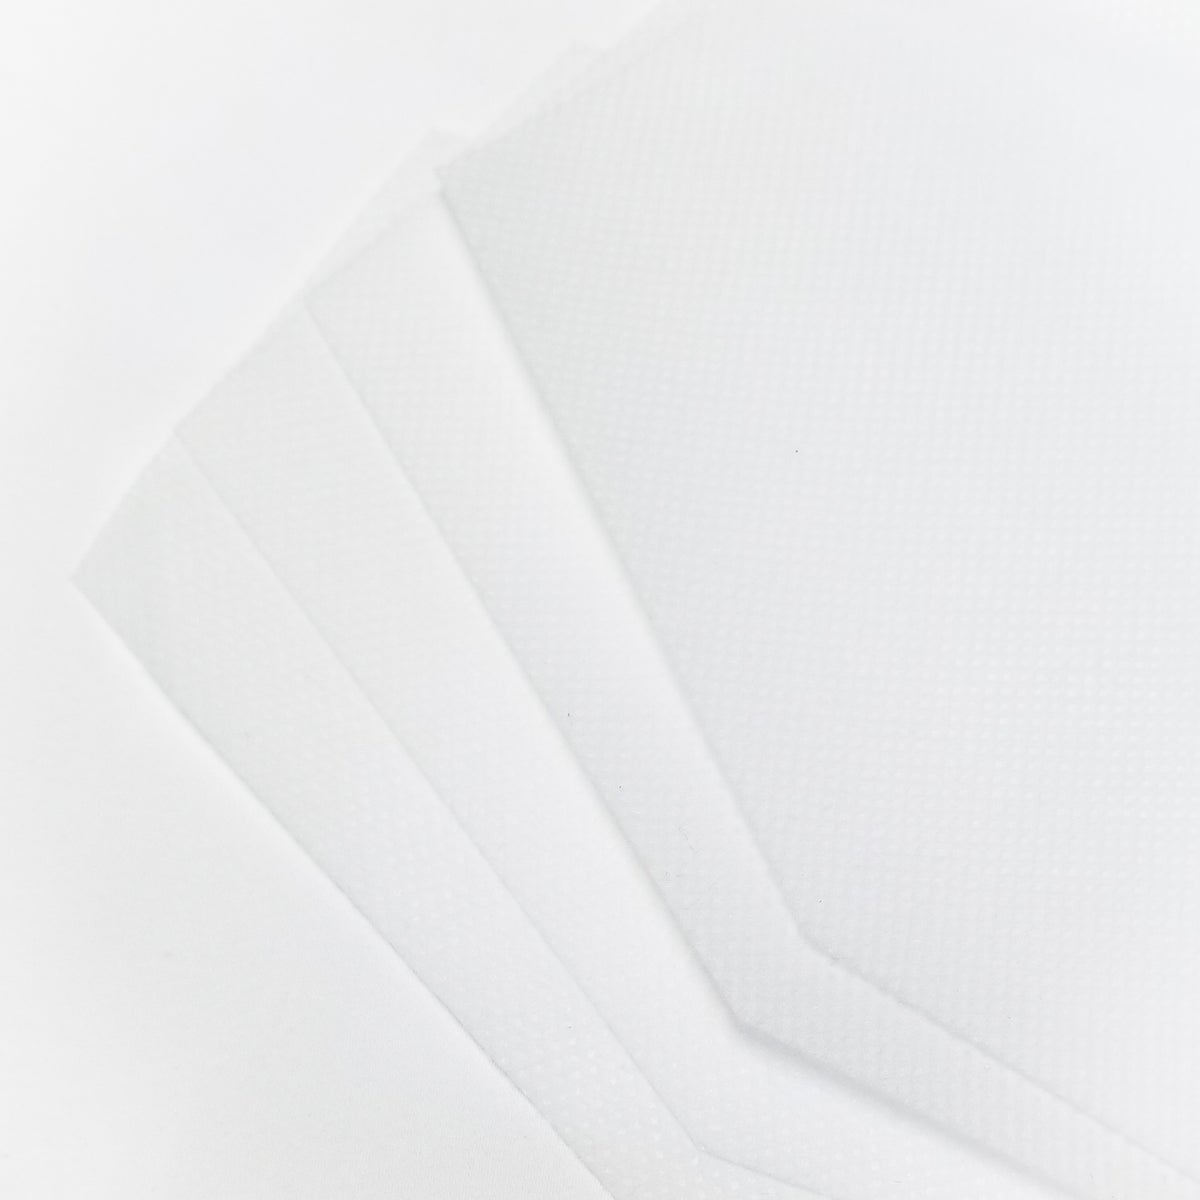 Replacement <br /> Filter Pack